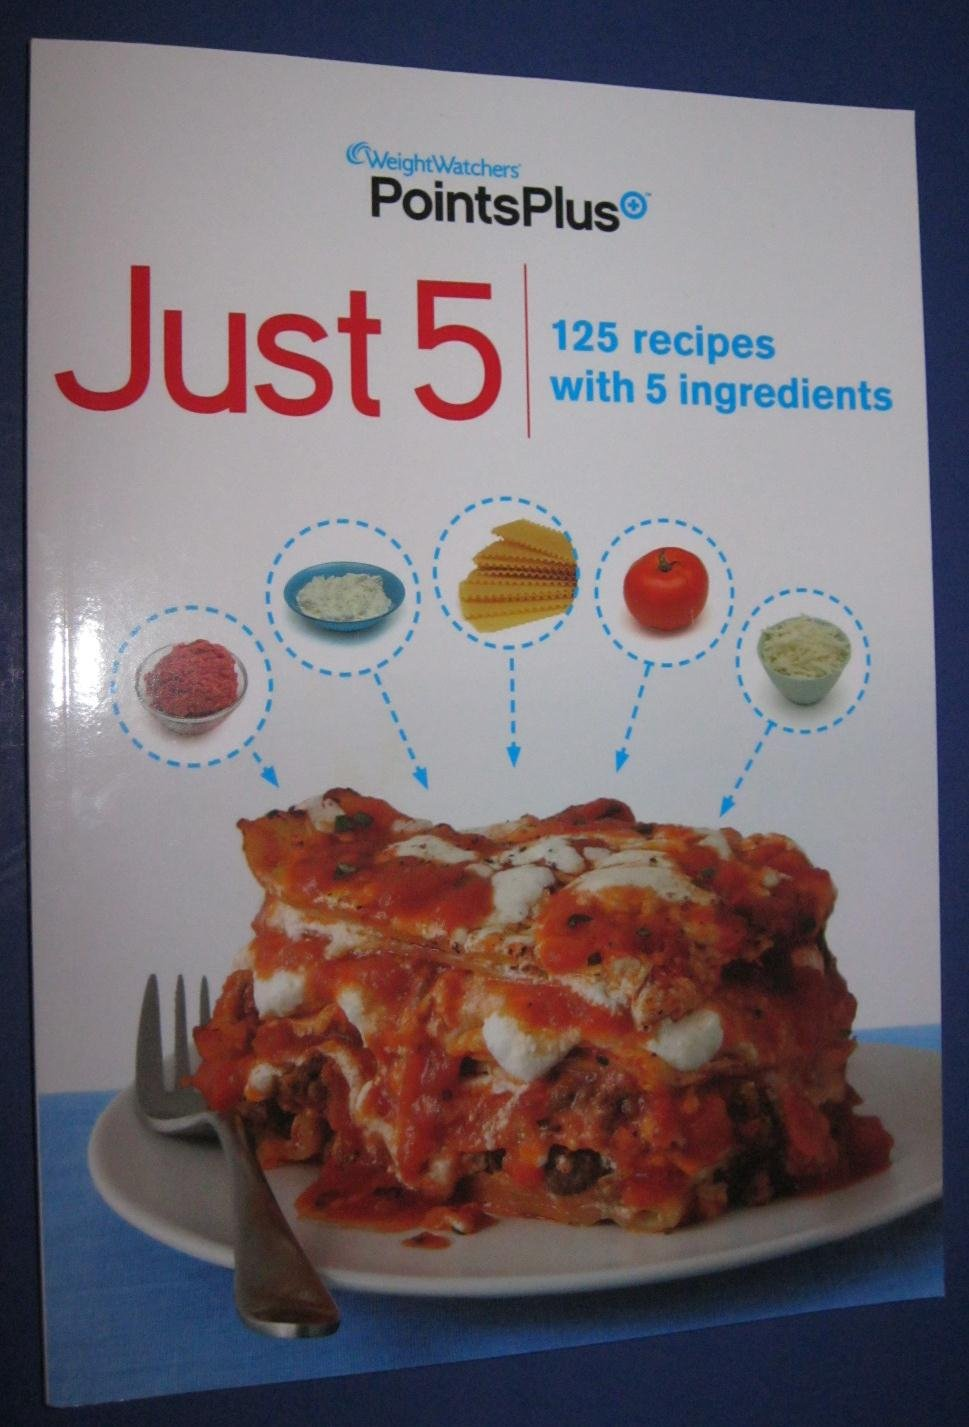 Weight watchers points plus just 5 cookbook 125 recipes with 5 weight watchers points plus just 5 cookbook 125 recipes with 5 ingredients weight watchers amazon books nvjuhfo Images